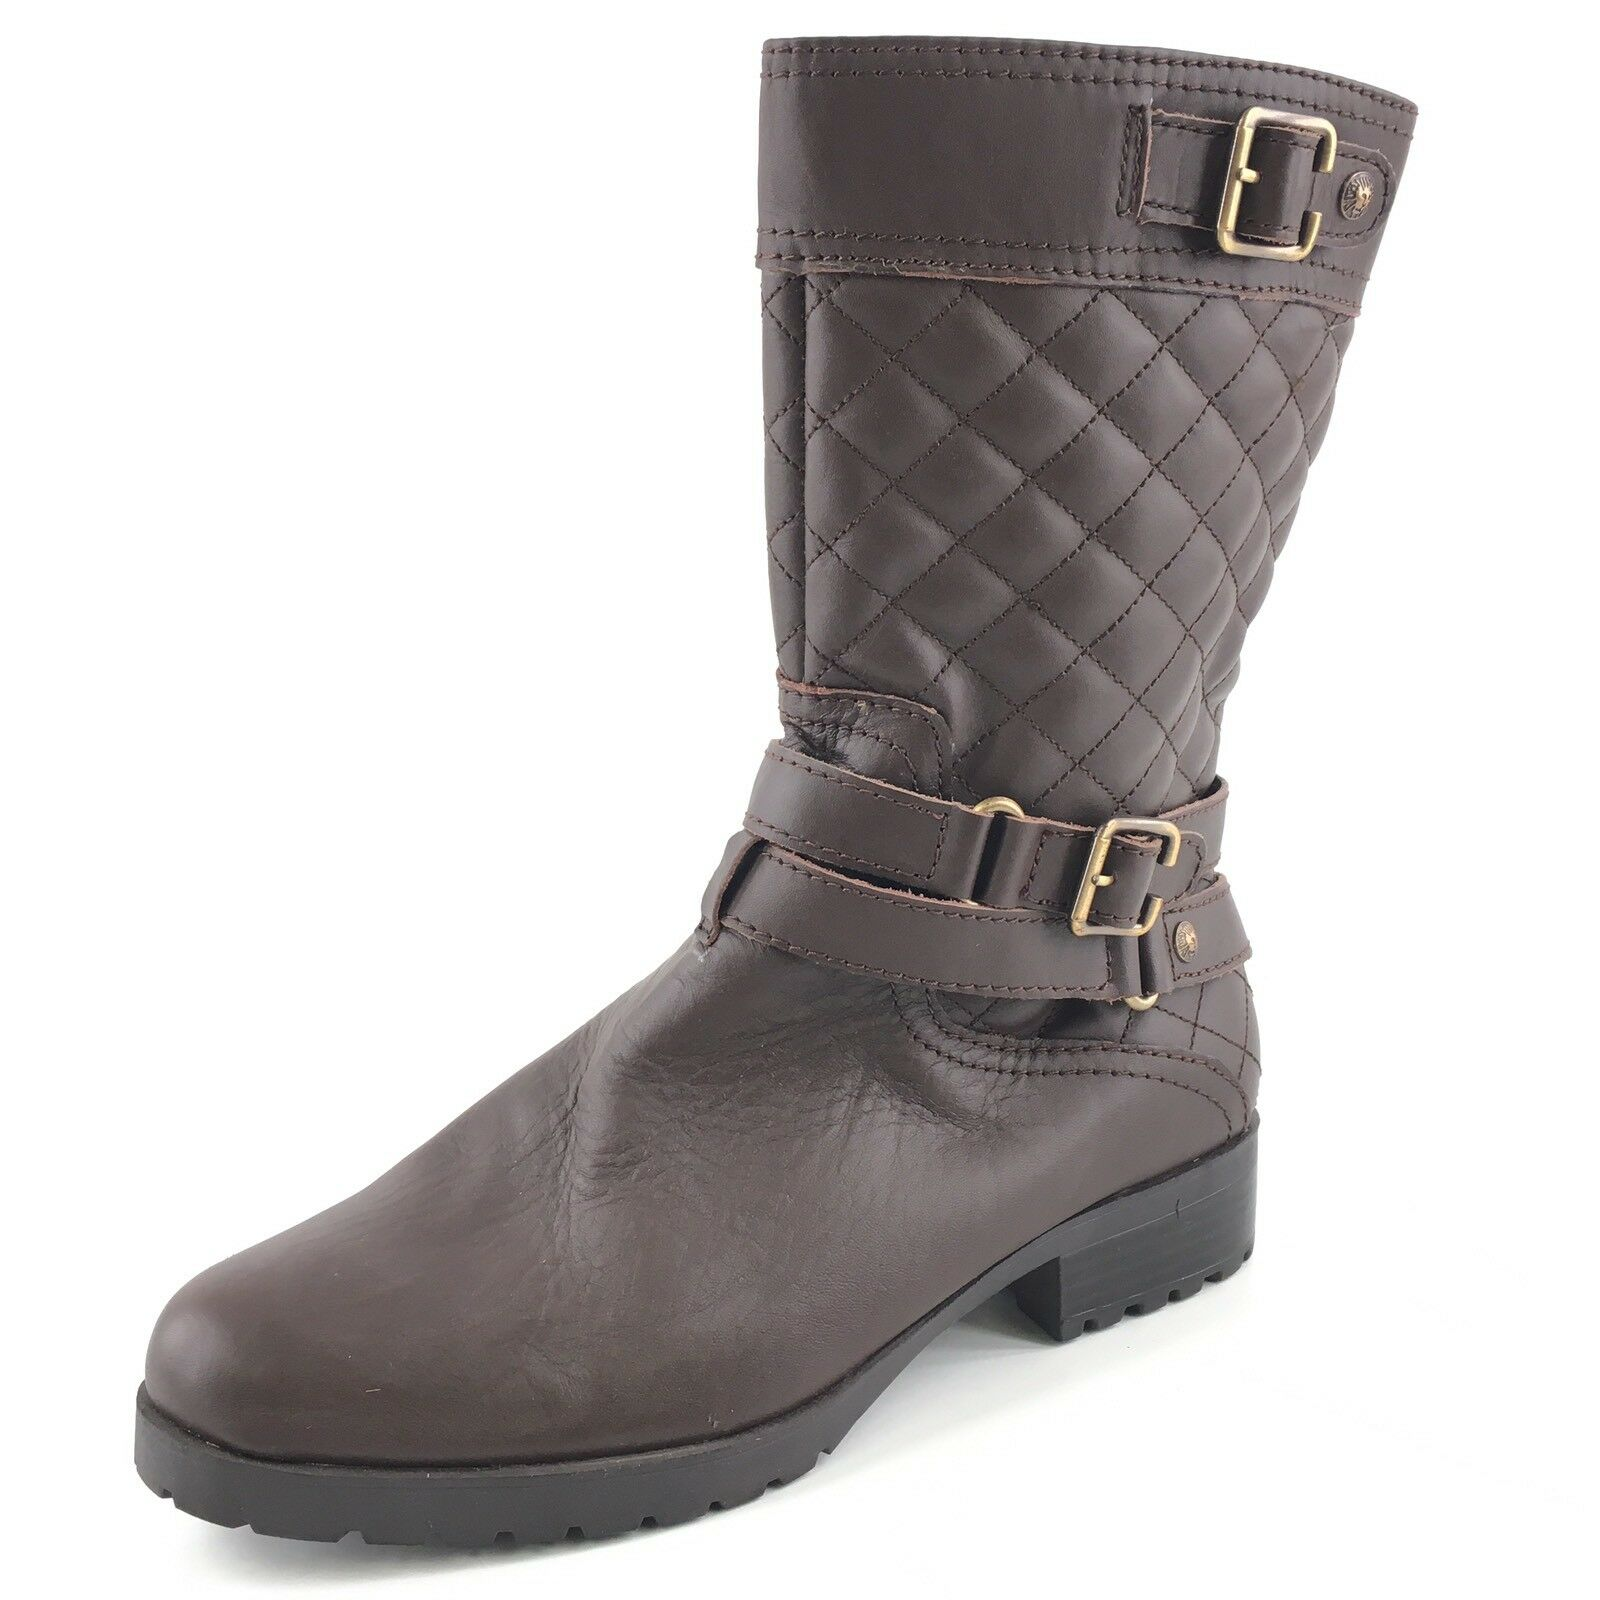 AK Anne Klein Women's Callforth Brown Leather Quilted Equestrian Boot Size 9 M*